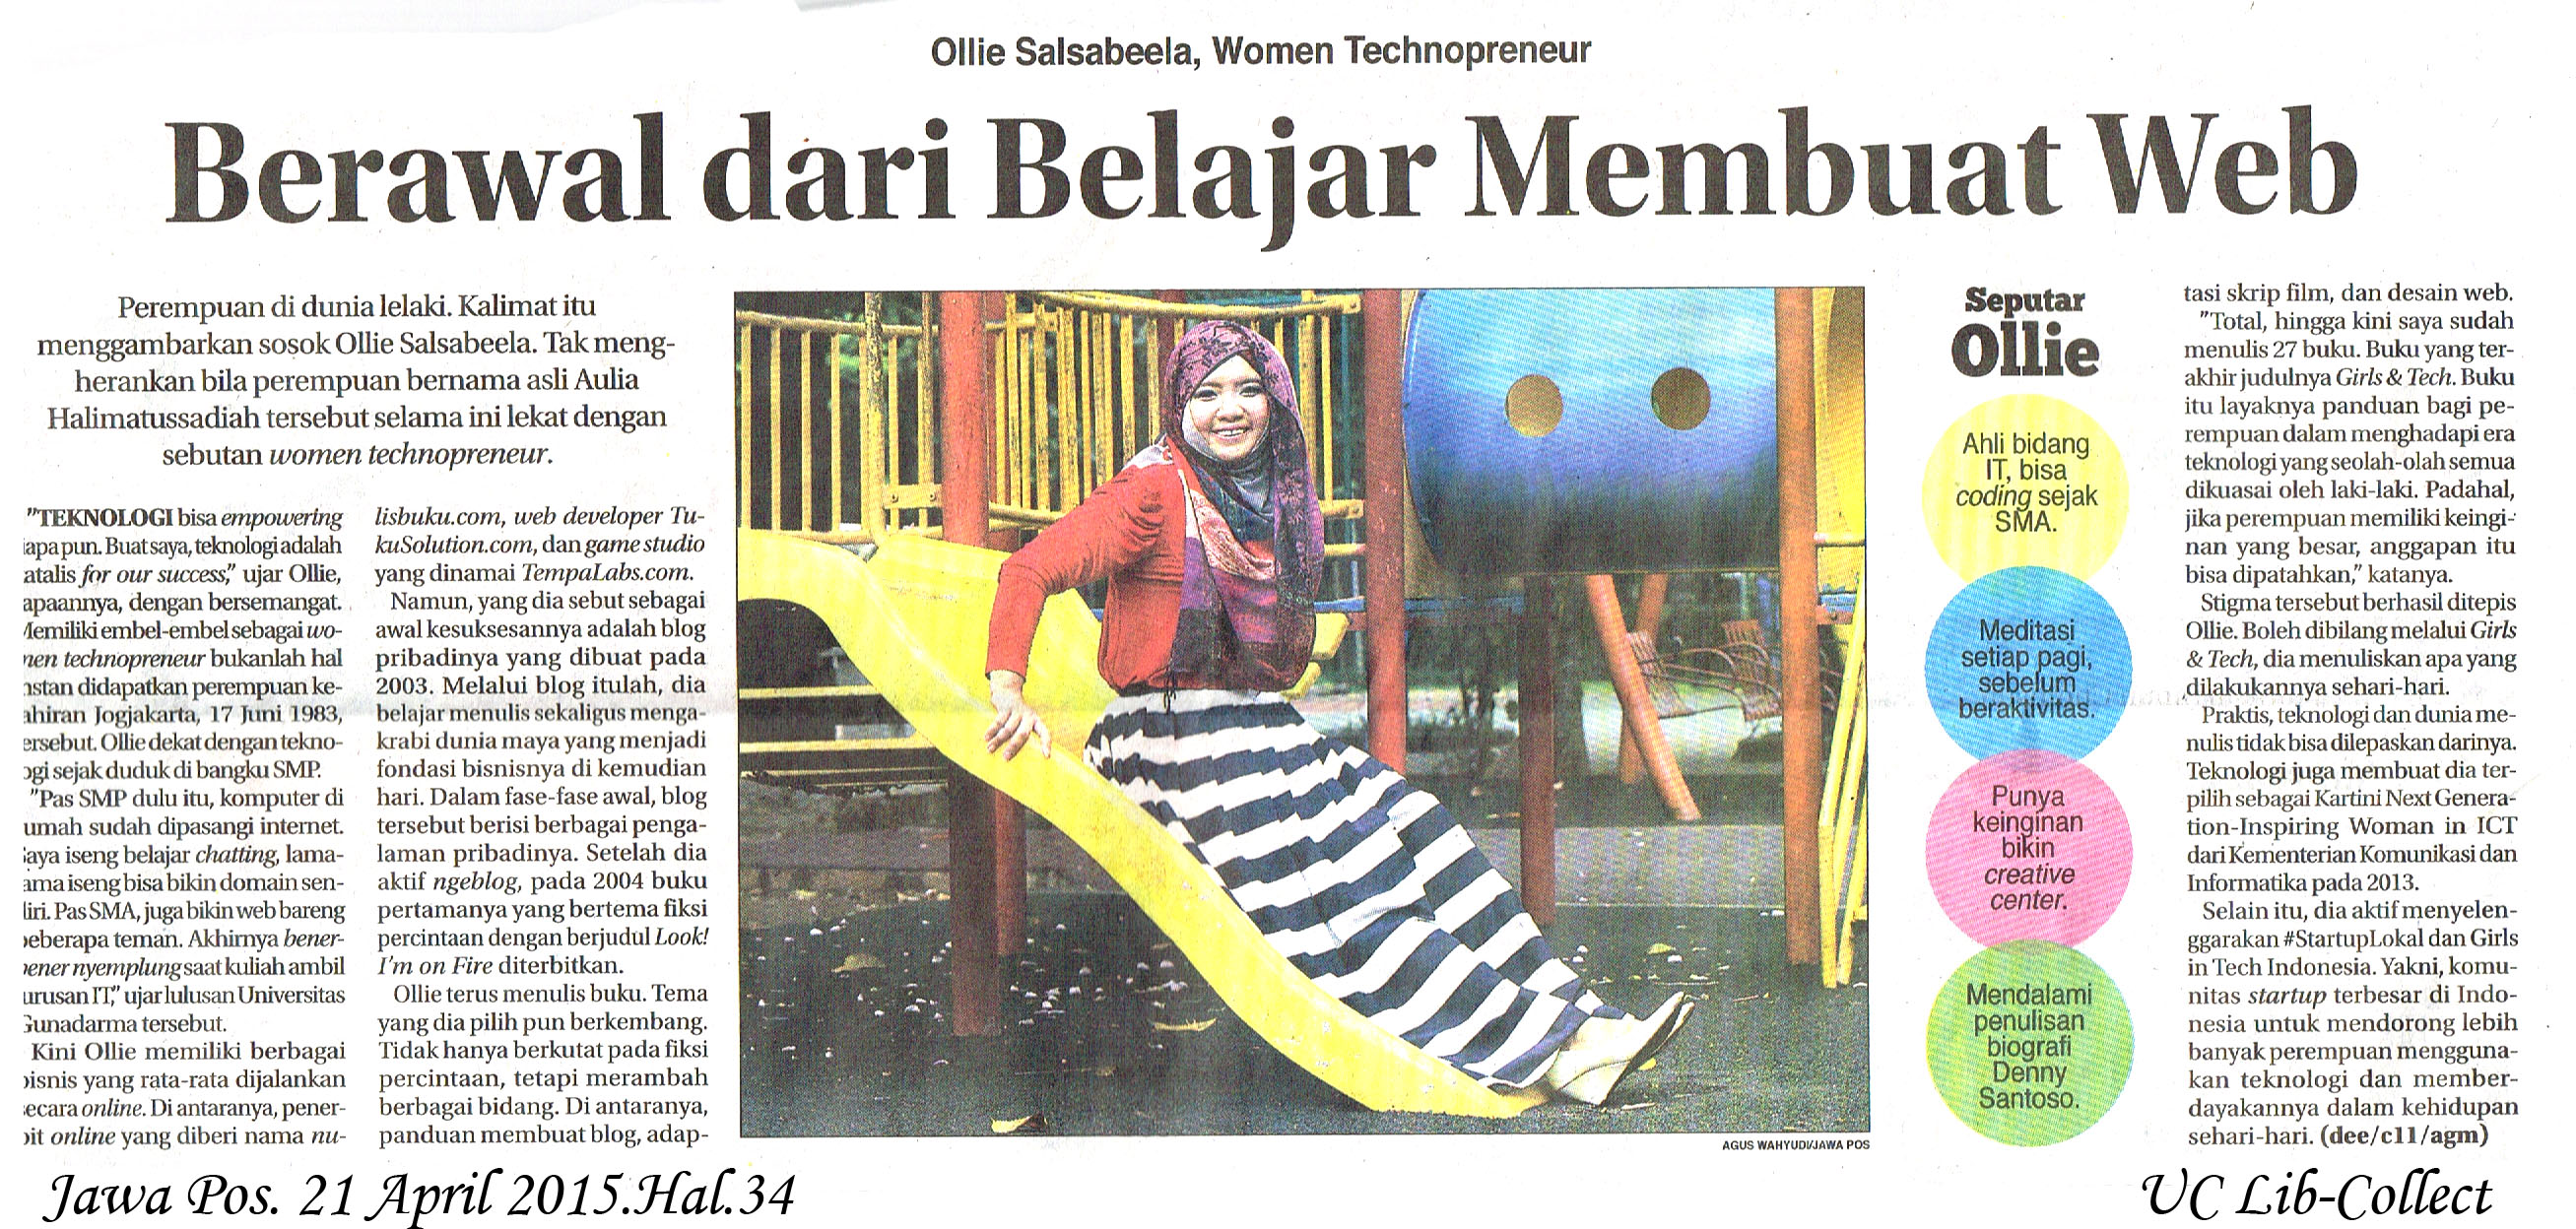 Ollie Salsabeela, Women Technopreneur. Jawa Pos. 21 April 2015.Hal.34